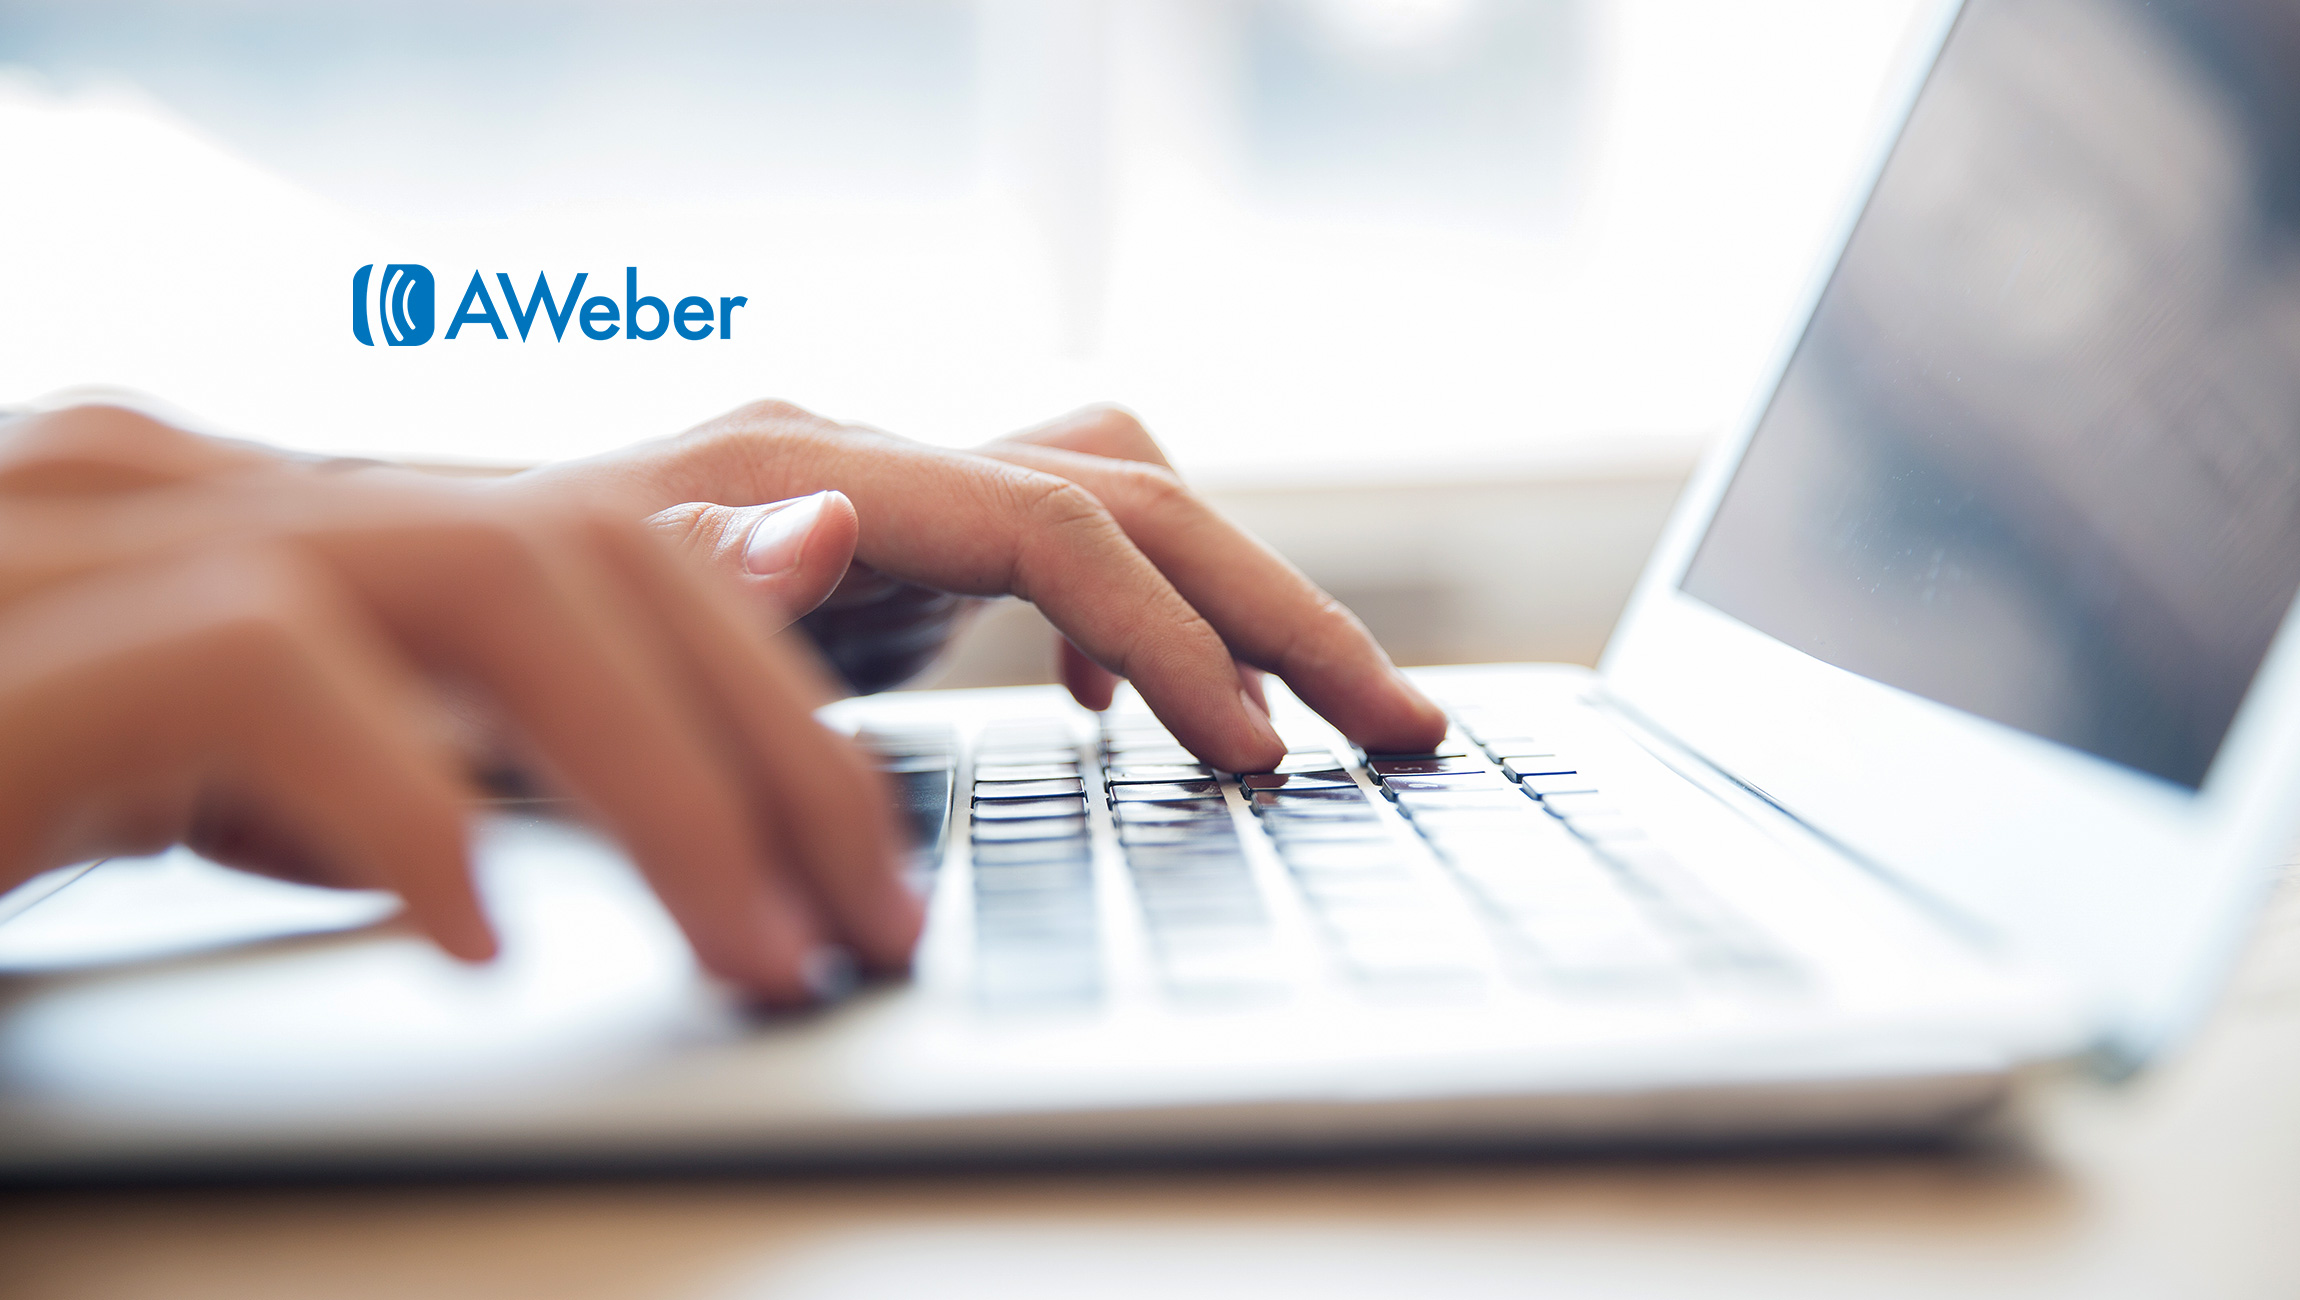 AWeber Adds CJ Affiliate Network to Its Affiliate Program